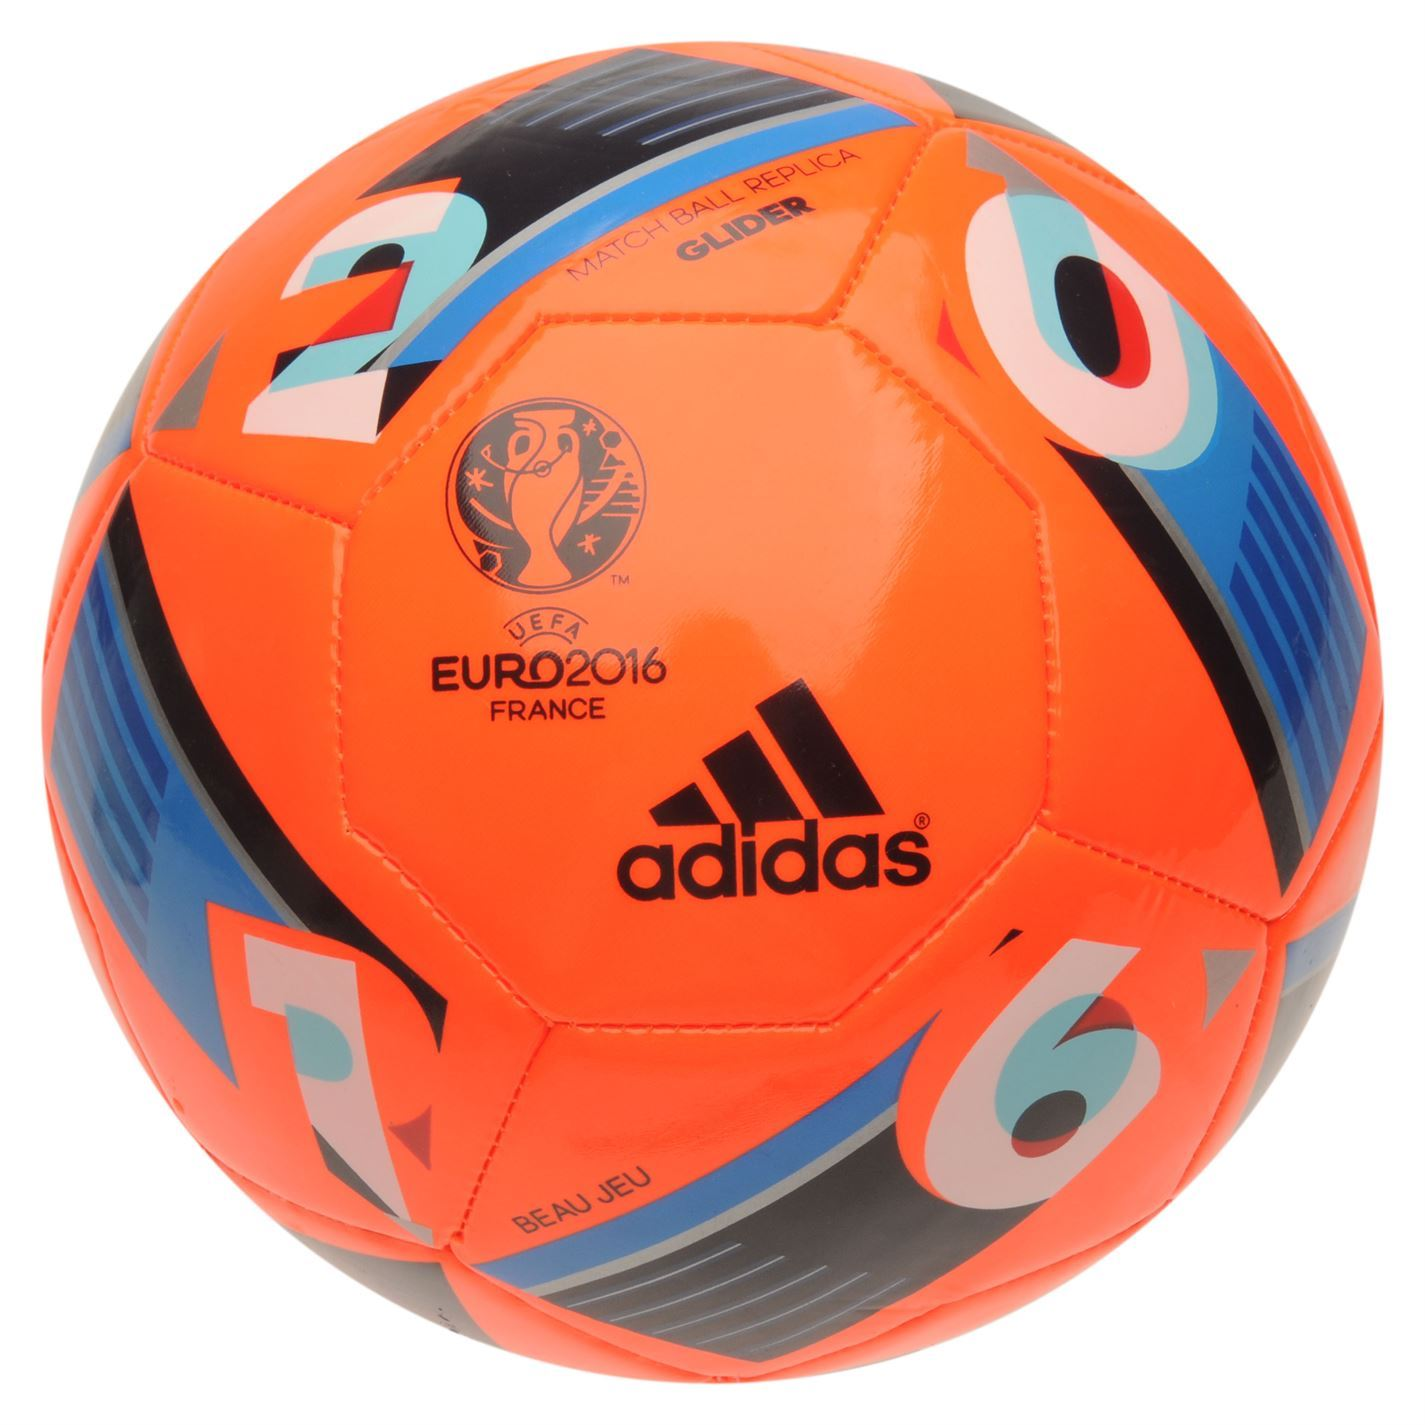 adidas uefa euro 2016 glider football solar orange soccer. Black Bedroom Furniture Sets. Home Design Ideas